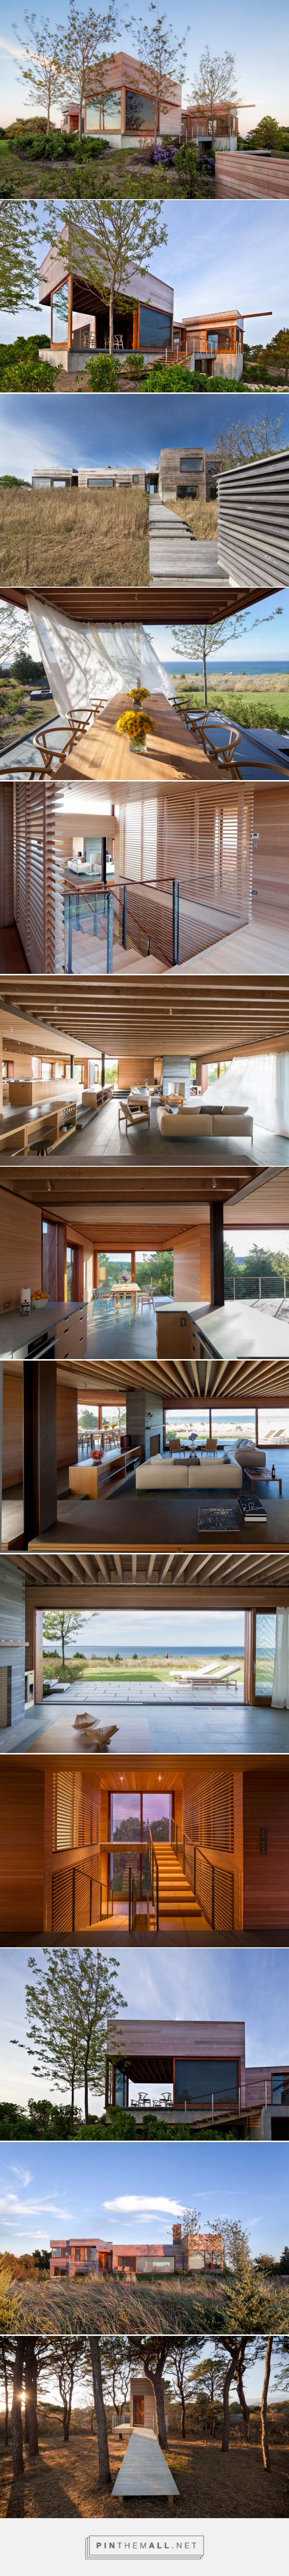 peter rose forms island residence in massachusetts as a series of connected pavilions - created via http://pinthemall.net